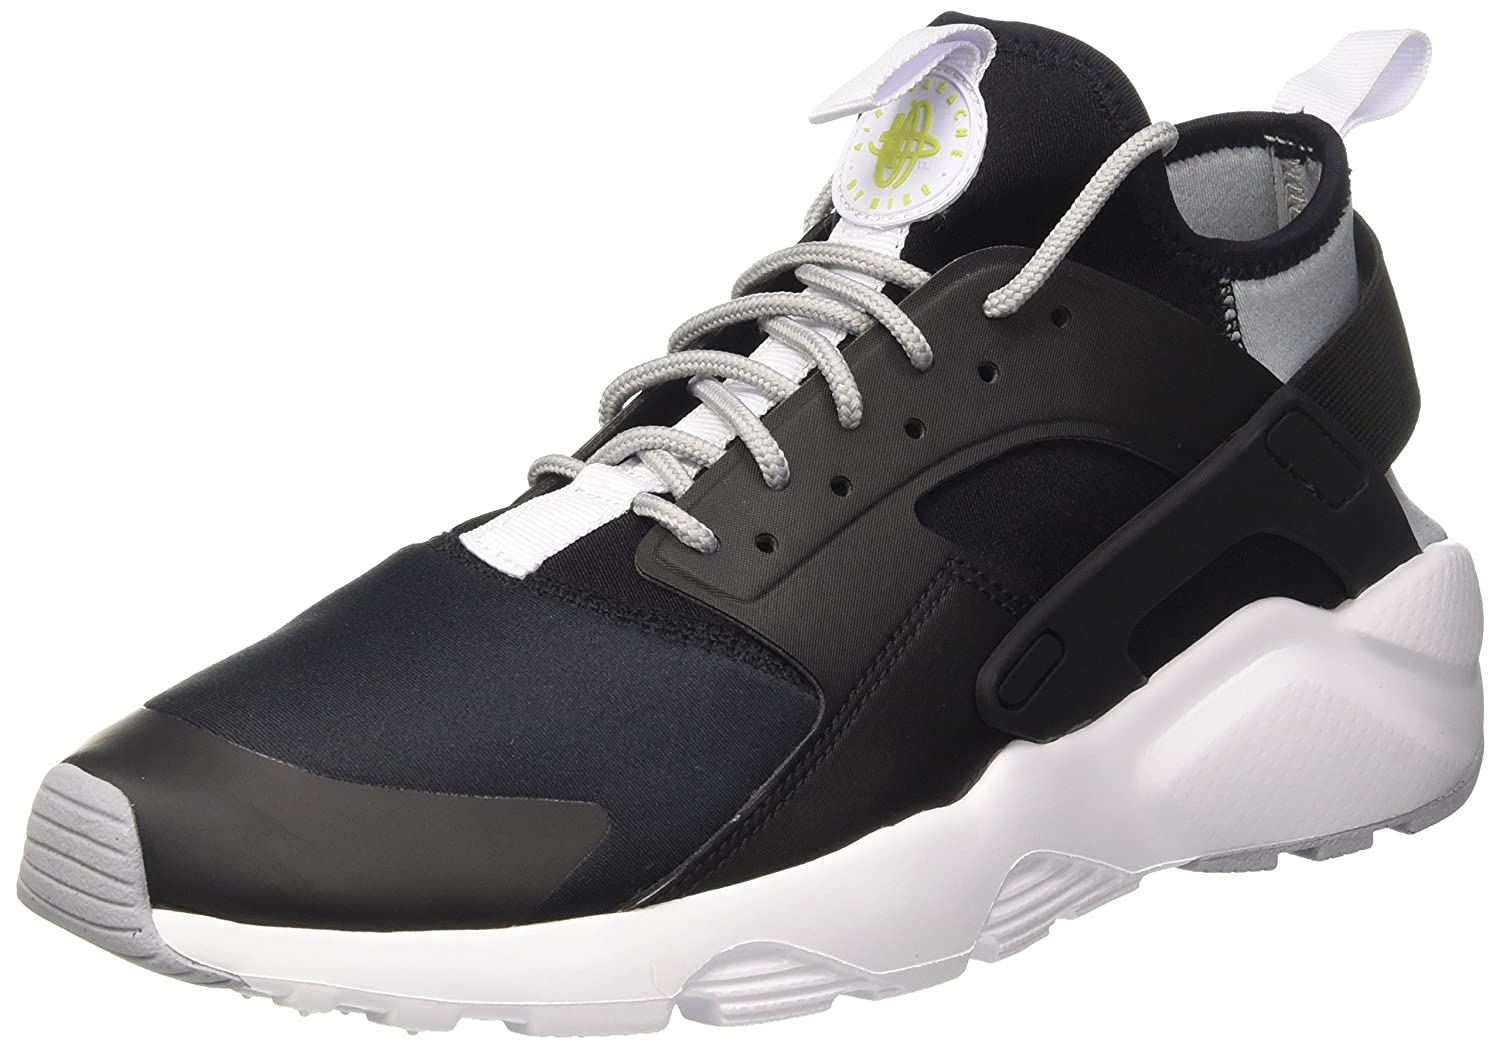 half off 1fa5e e7377 Nike Men s Air Huarache Run Ultra Black White-Wolf Grey Running Shoes-8 ( 819685-014)  Buy Online at Low Prices in India - Amazon.in